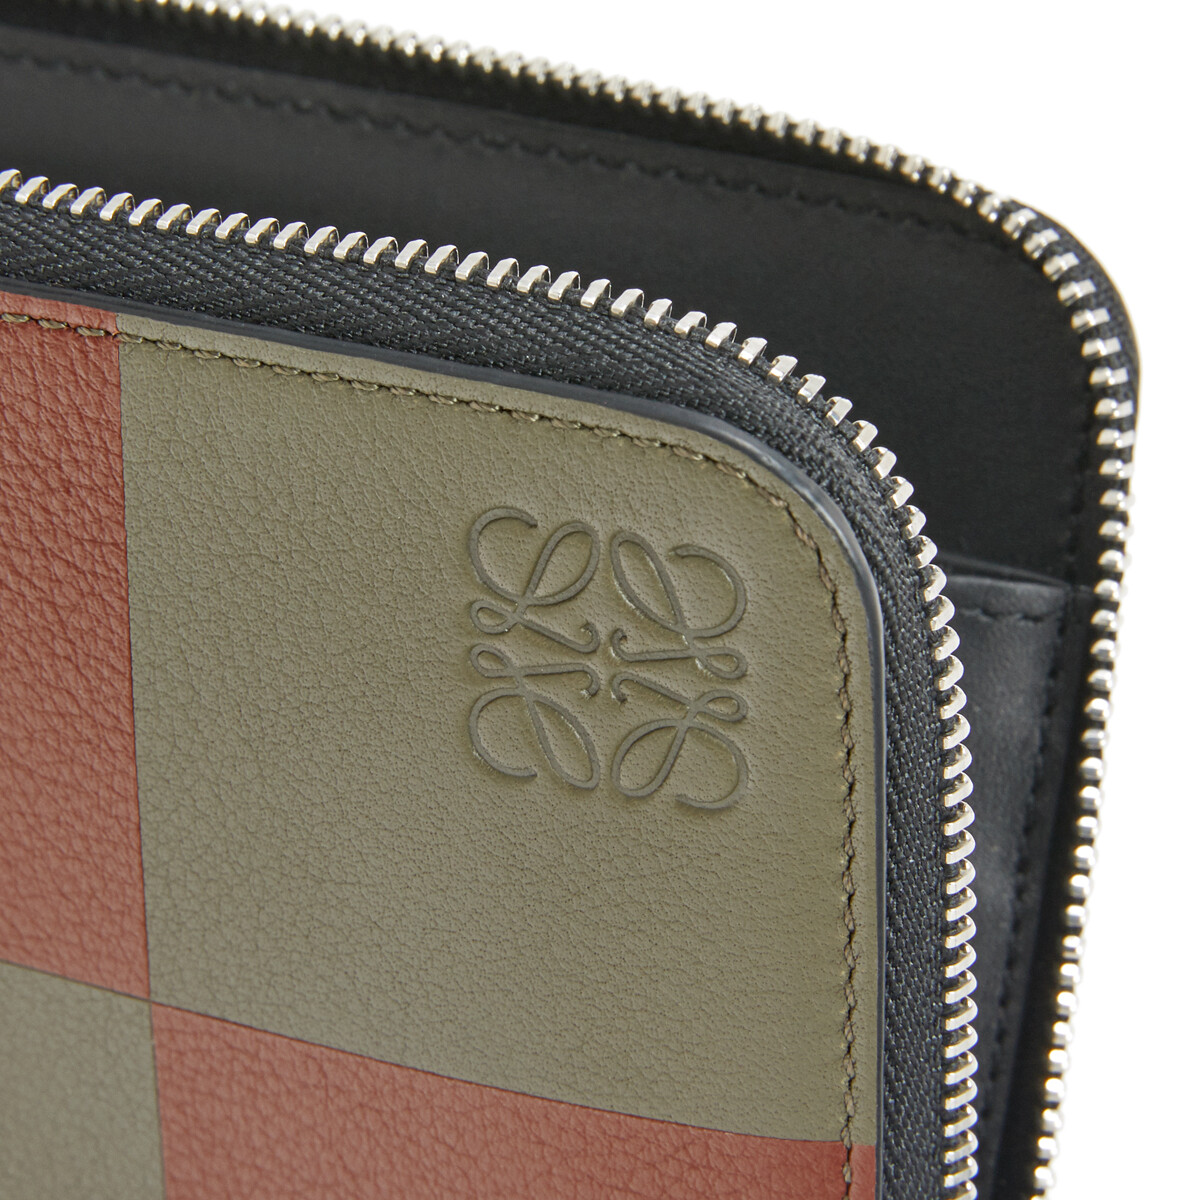 LOEWE Zip Around Wallet Bicolor Khaki Green/Cognac front